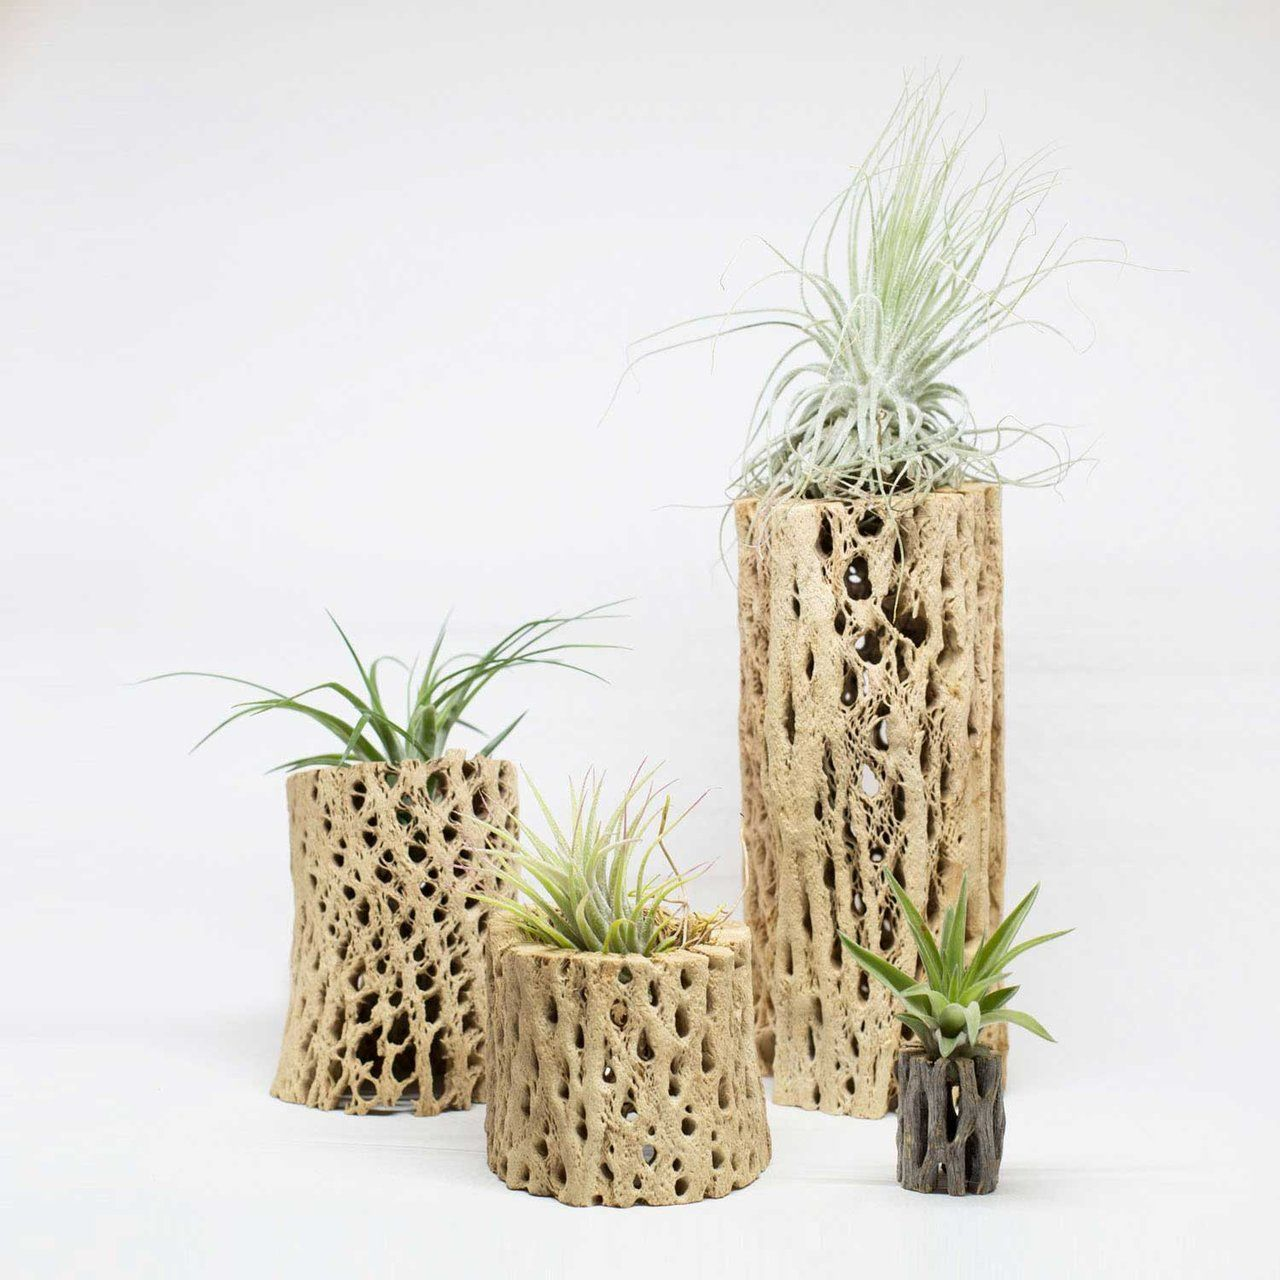 Air Plants Mounted on Large Cholla Cactus